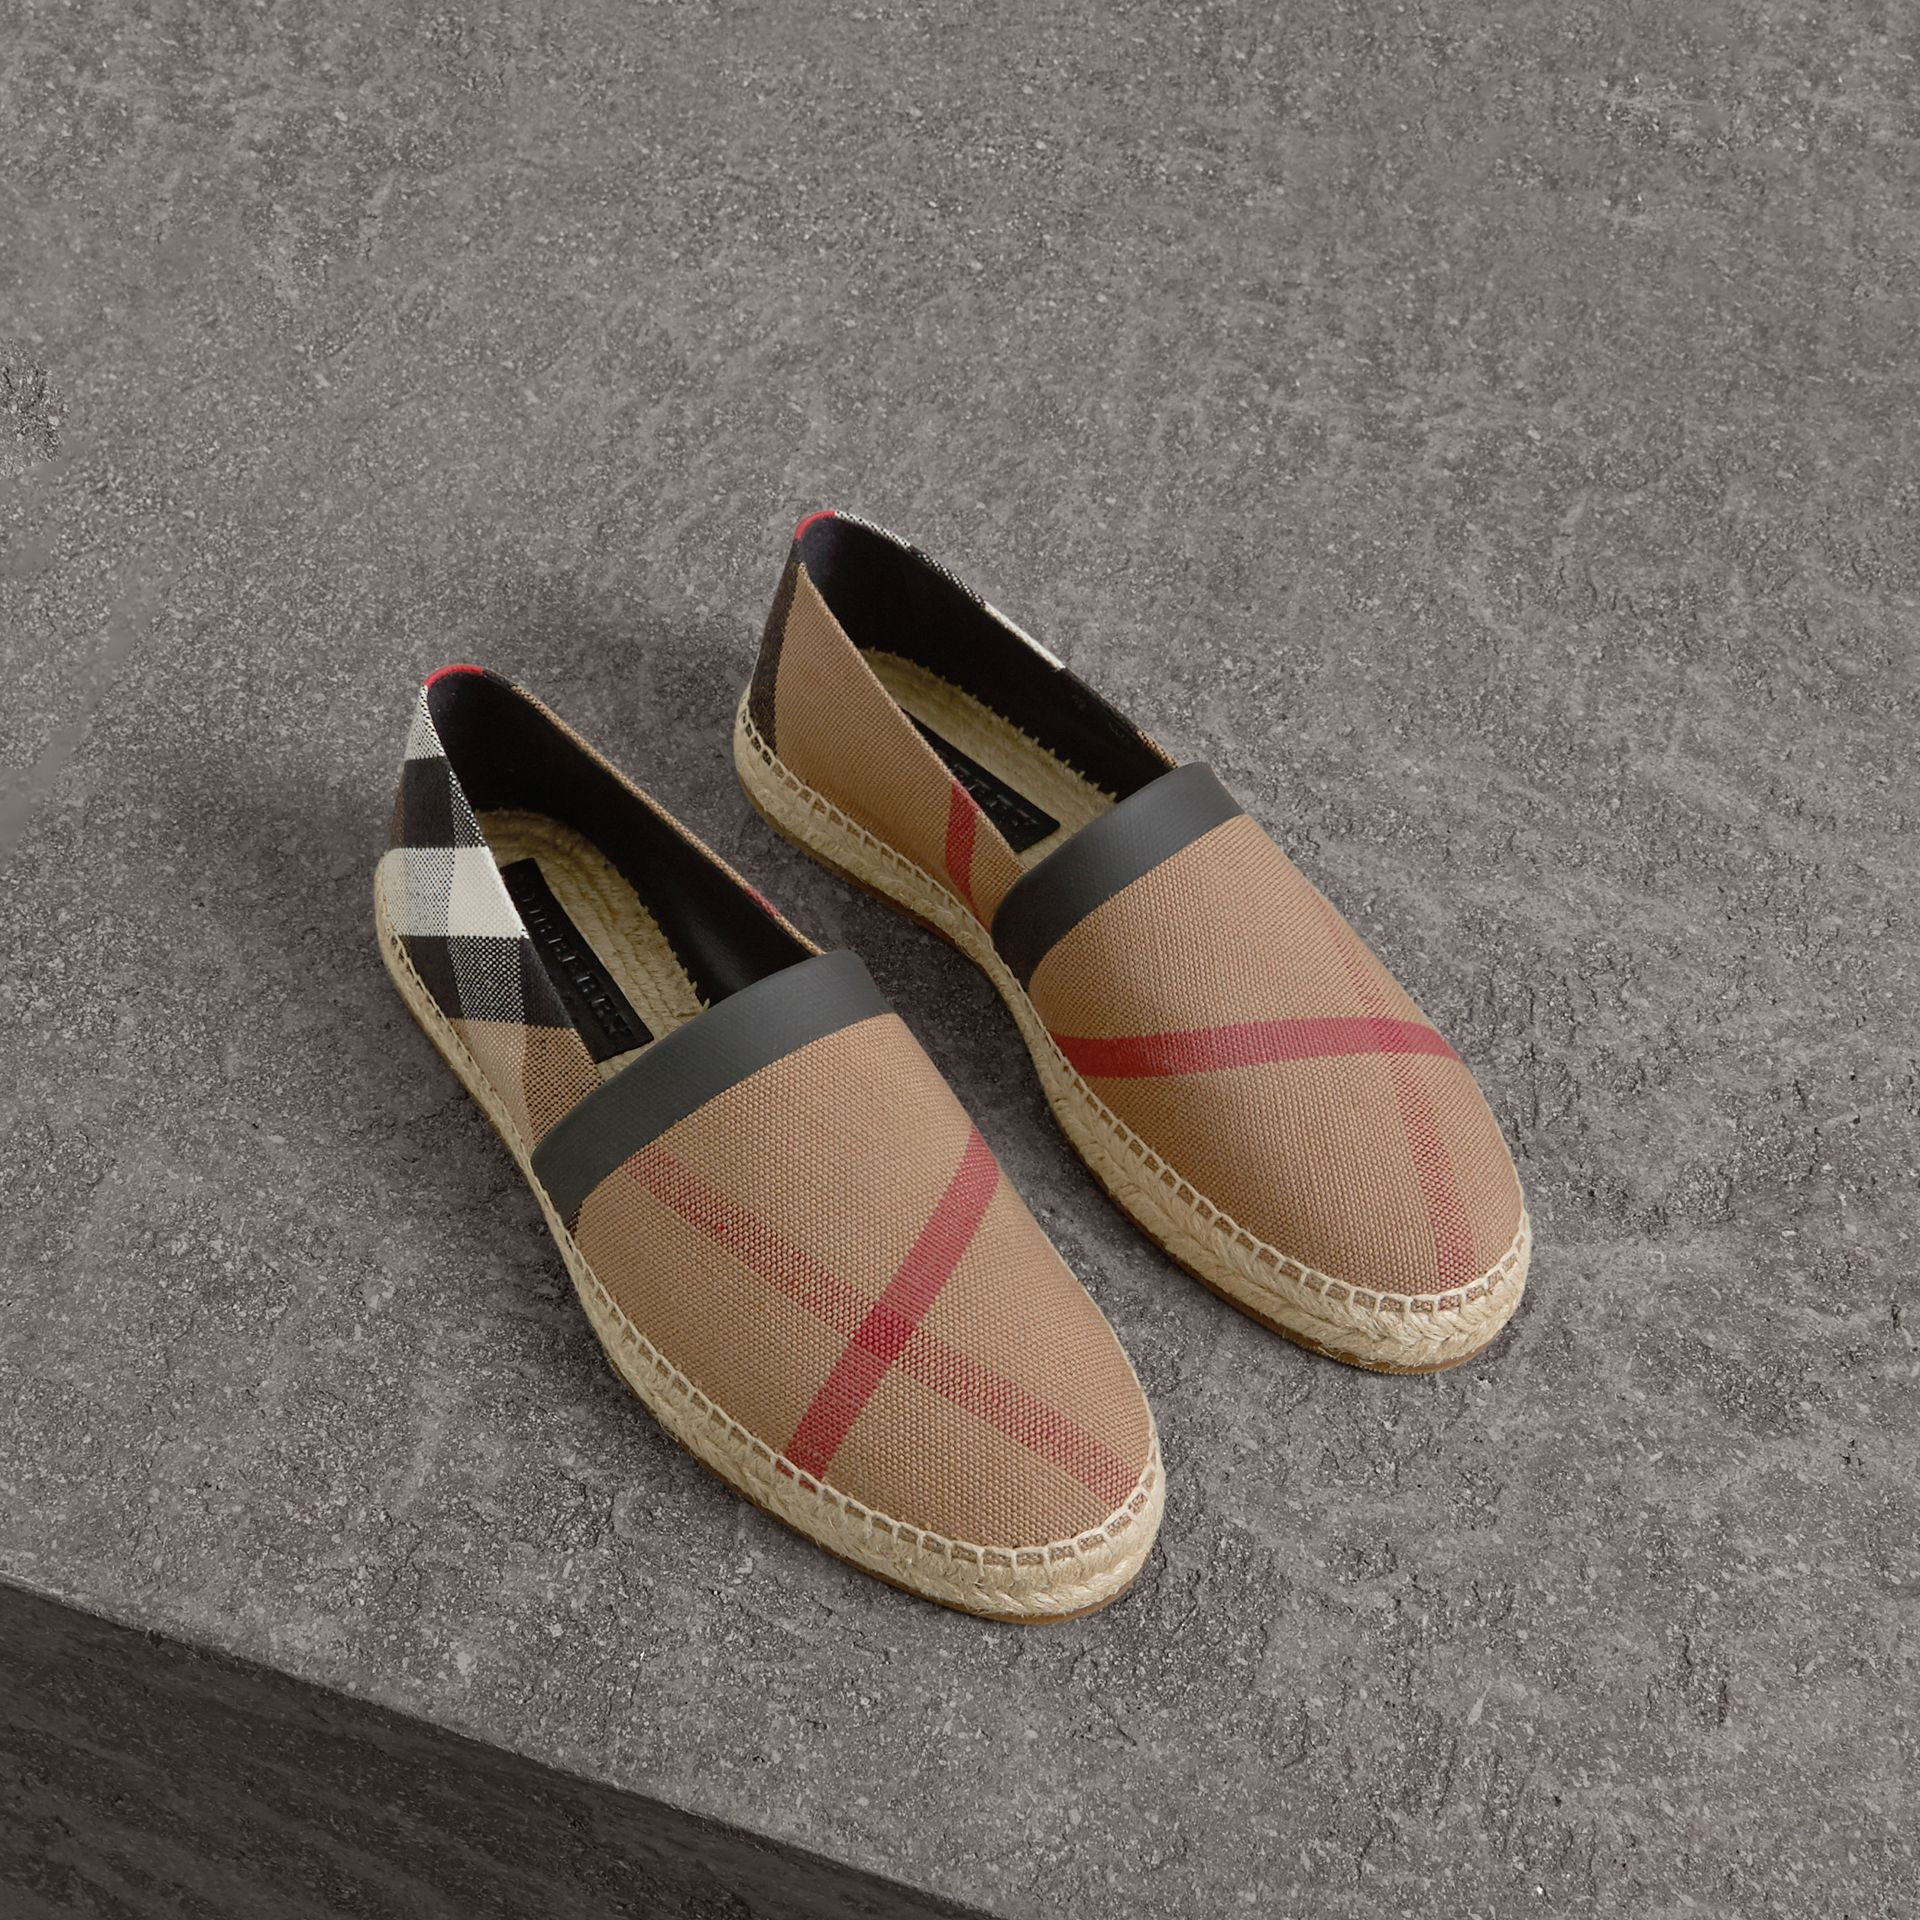 Check Cotton Canvas Seam-sealed Espadrilles in Classic - Men | Burberry Hong Kong - gallery image 0